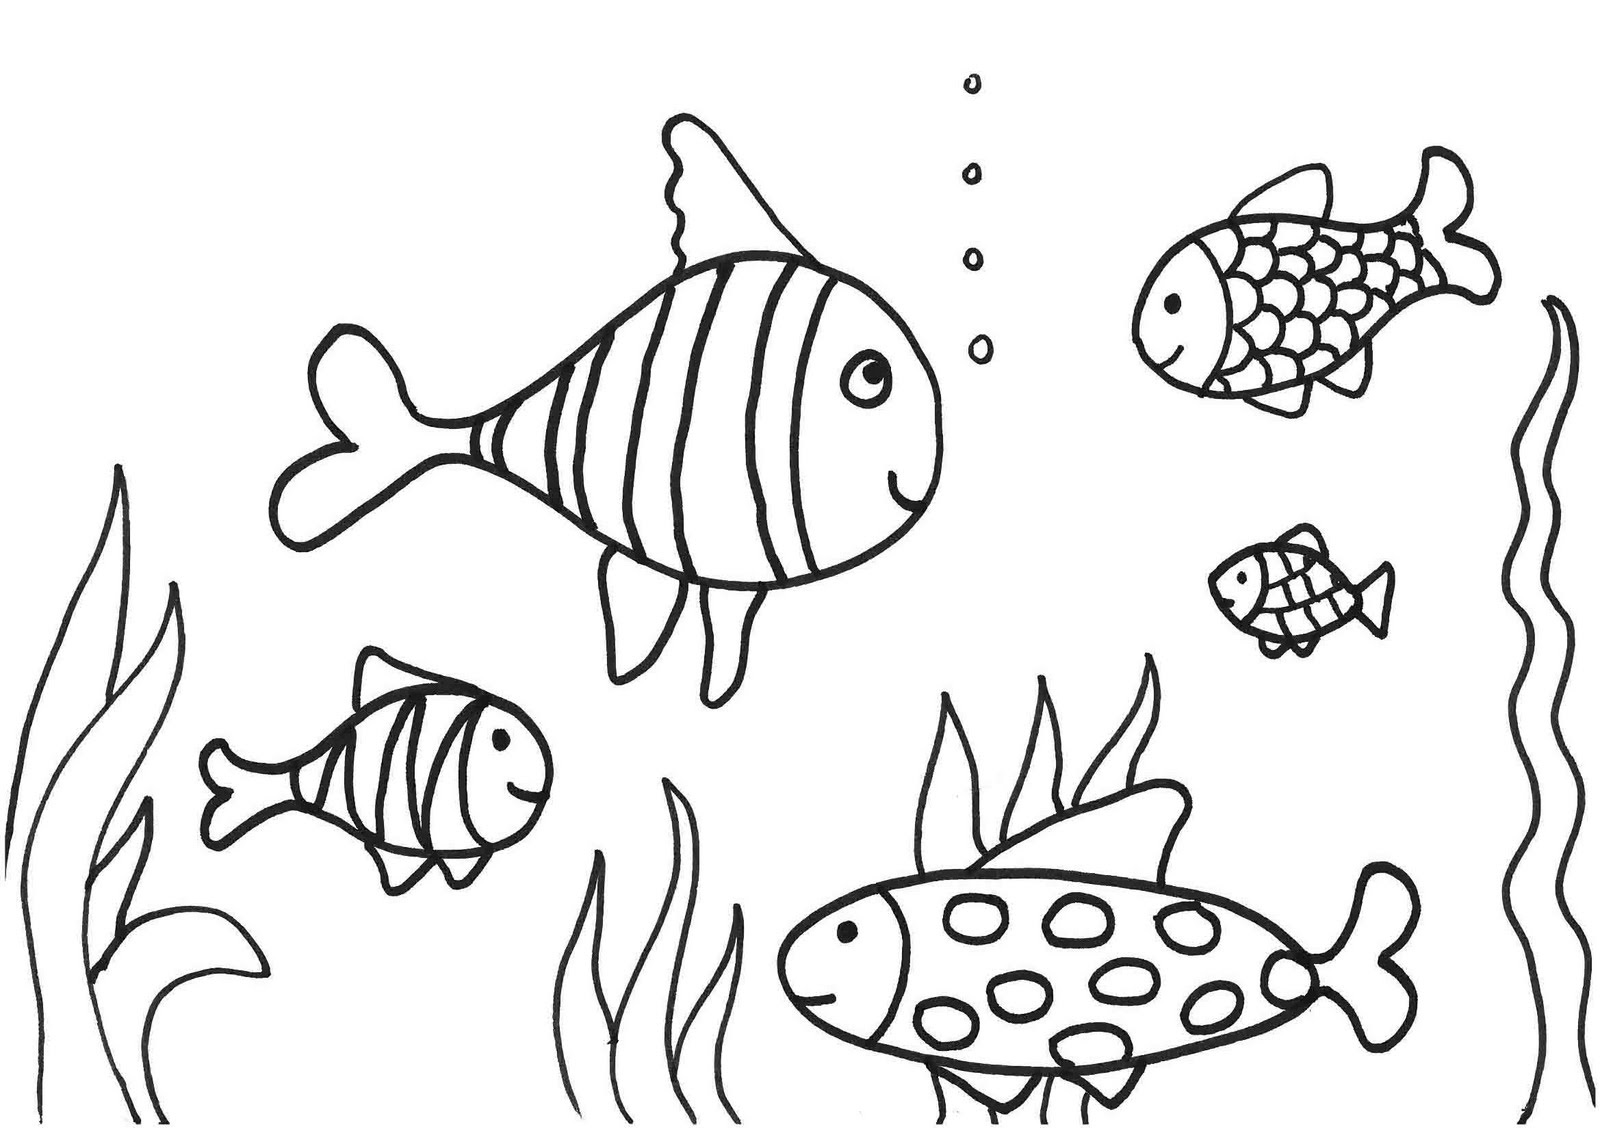 Free Coloring Pages for Toddlers Fish